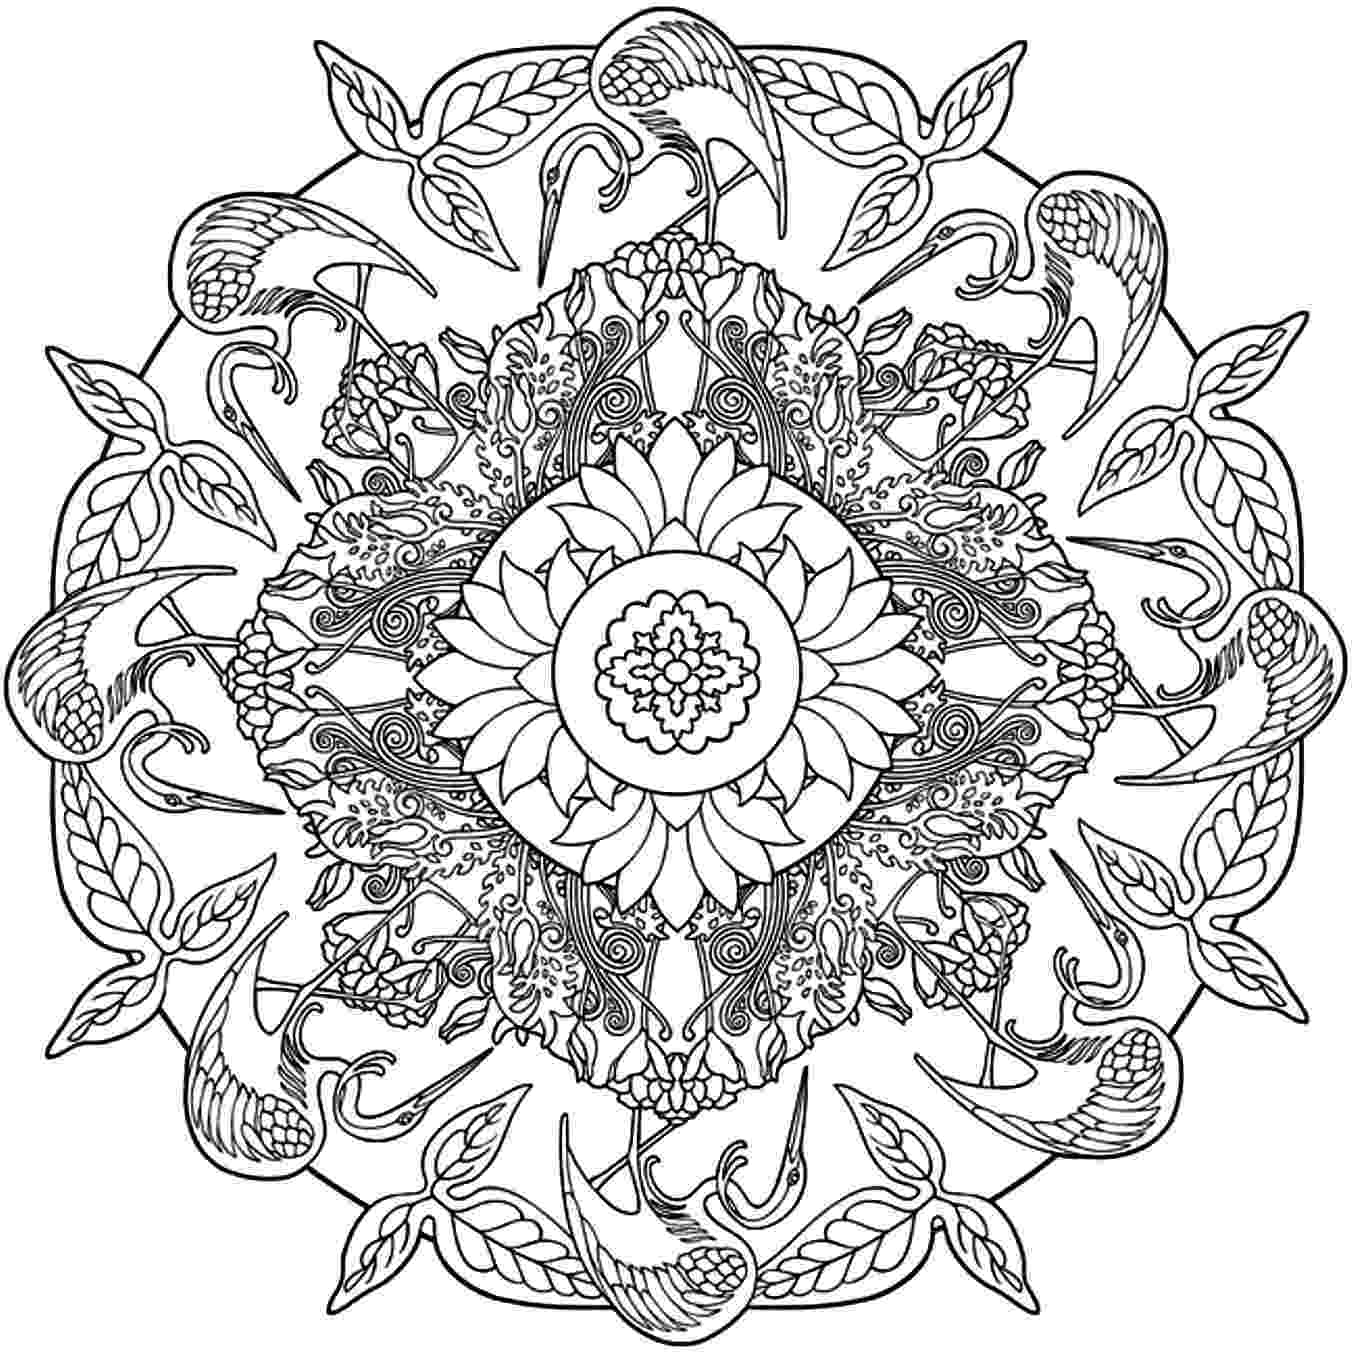 mandalas for coloring alisaburke new coloring page in the shop coloring mandalas for